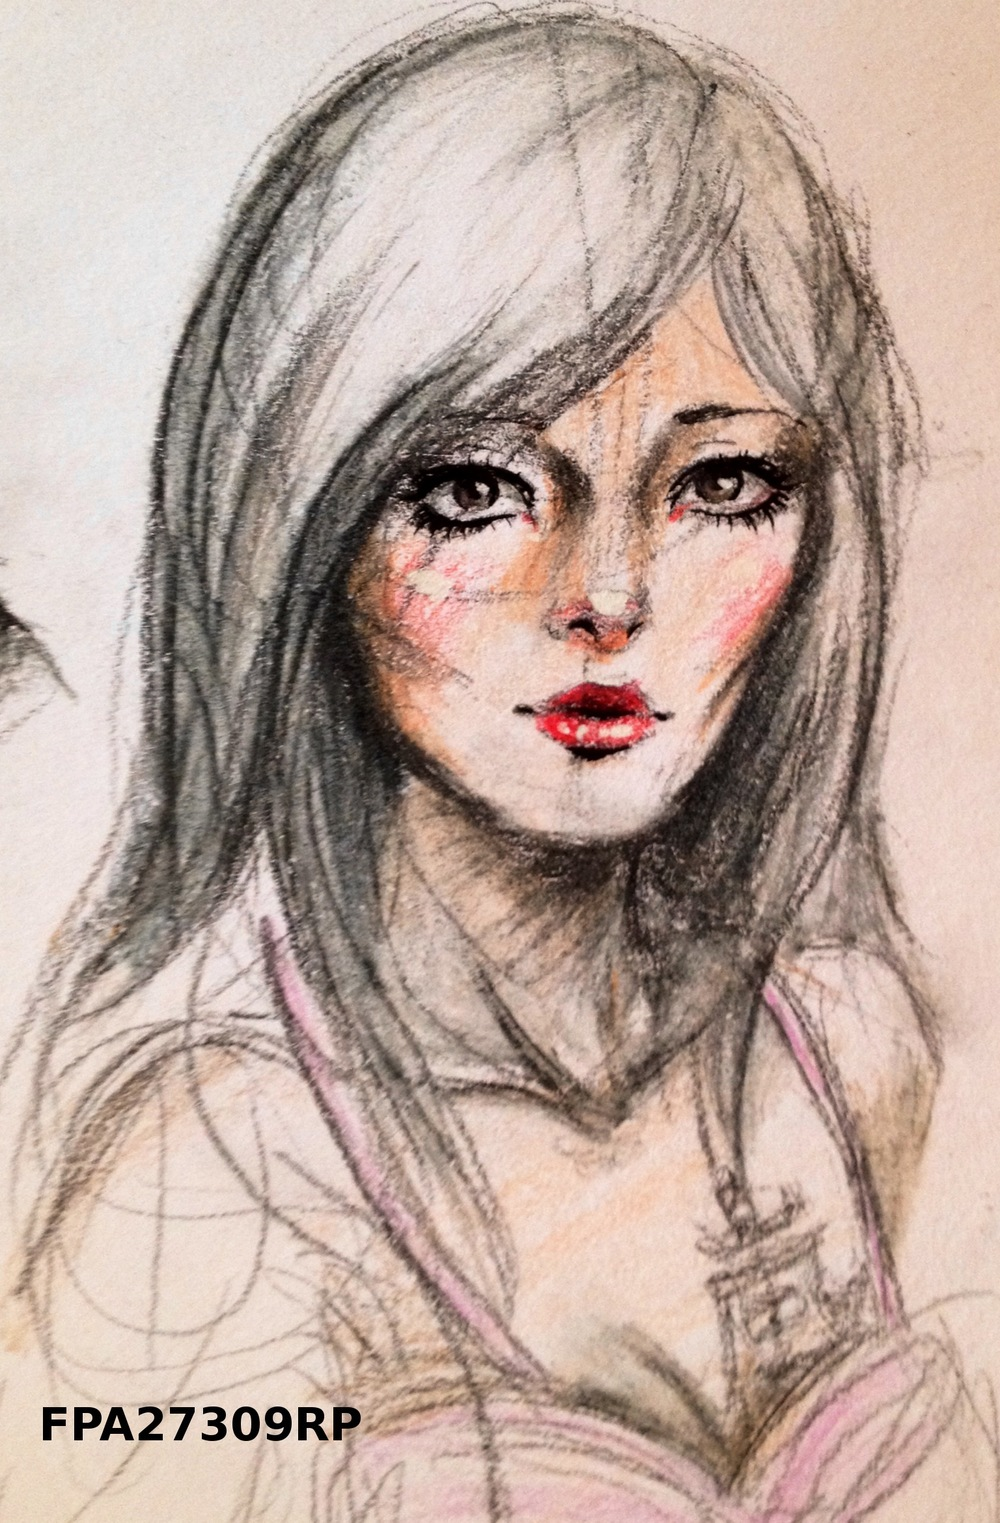 coloured pencil sketch 6.jpg